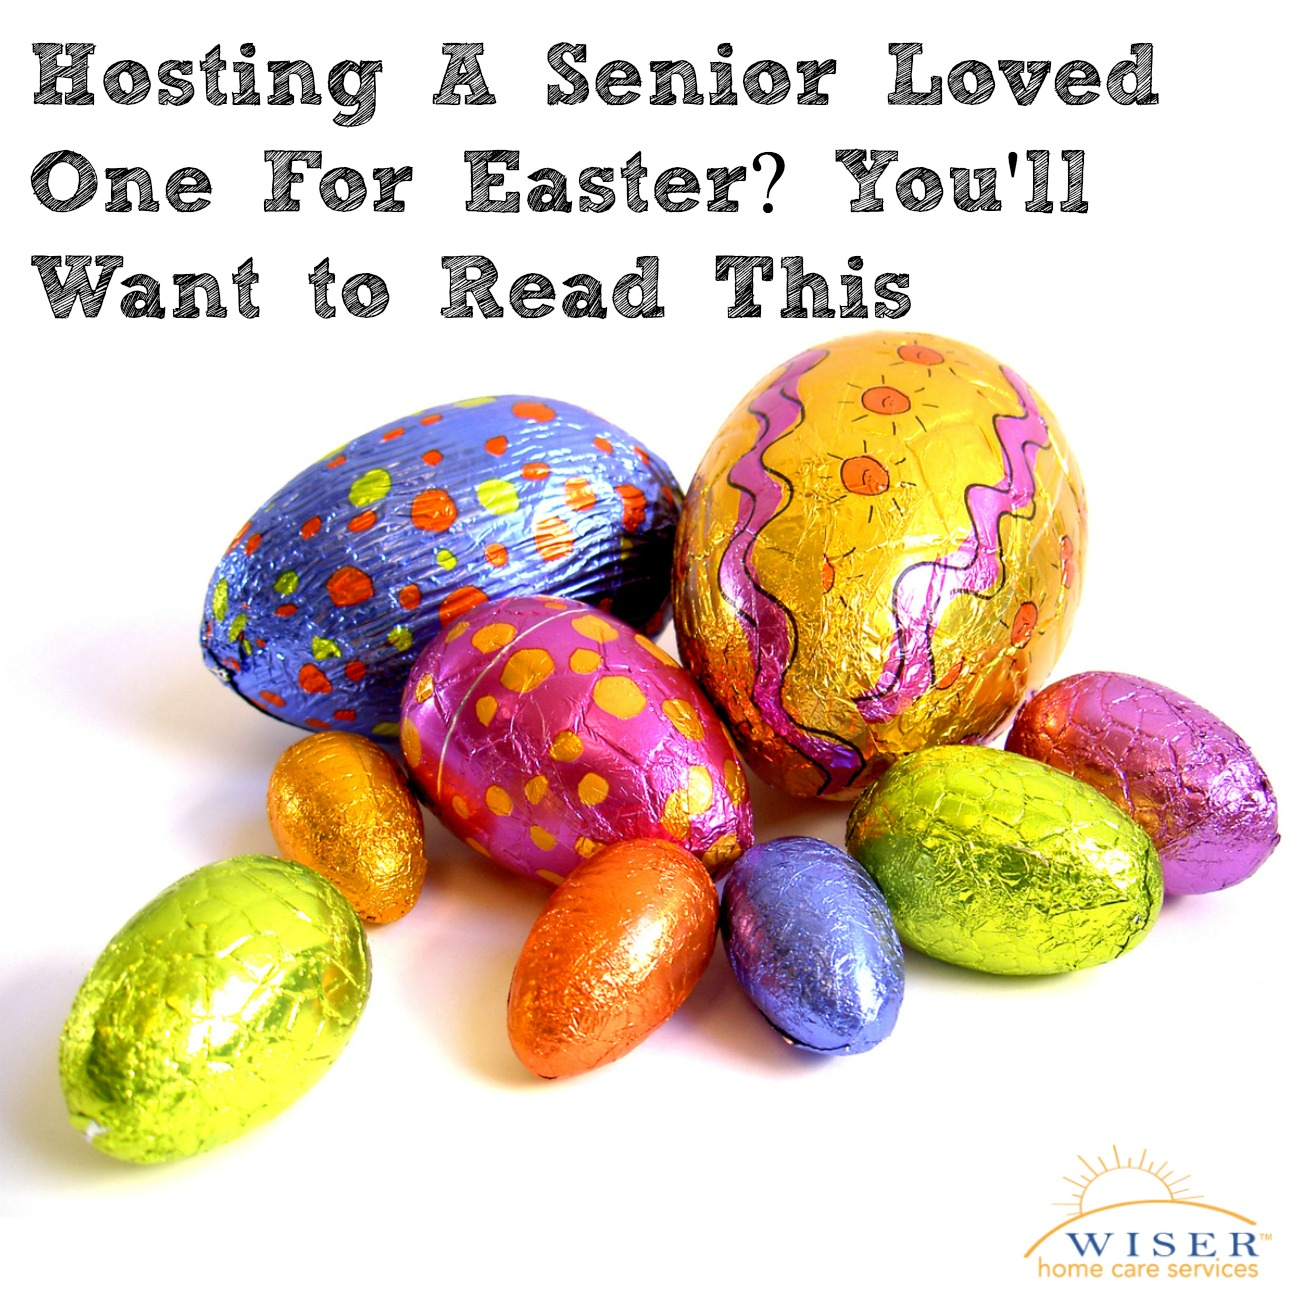 Easter is a great time to gather with family and friends and enjoy the spring weather. Make sure your elderly loved one is safe this Easter with these tips.